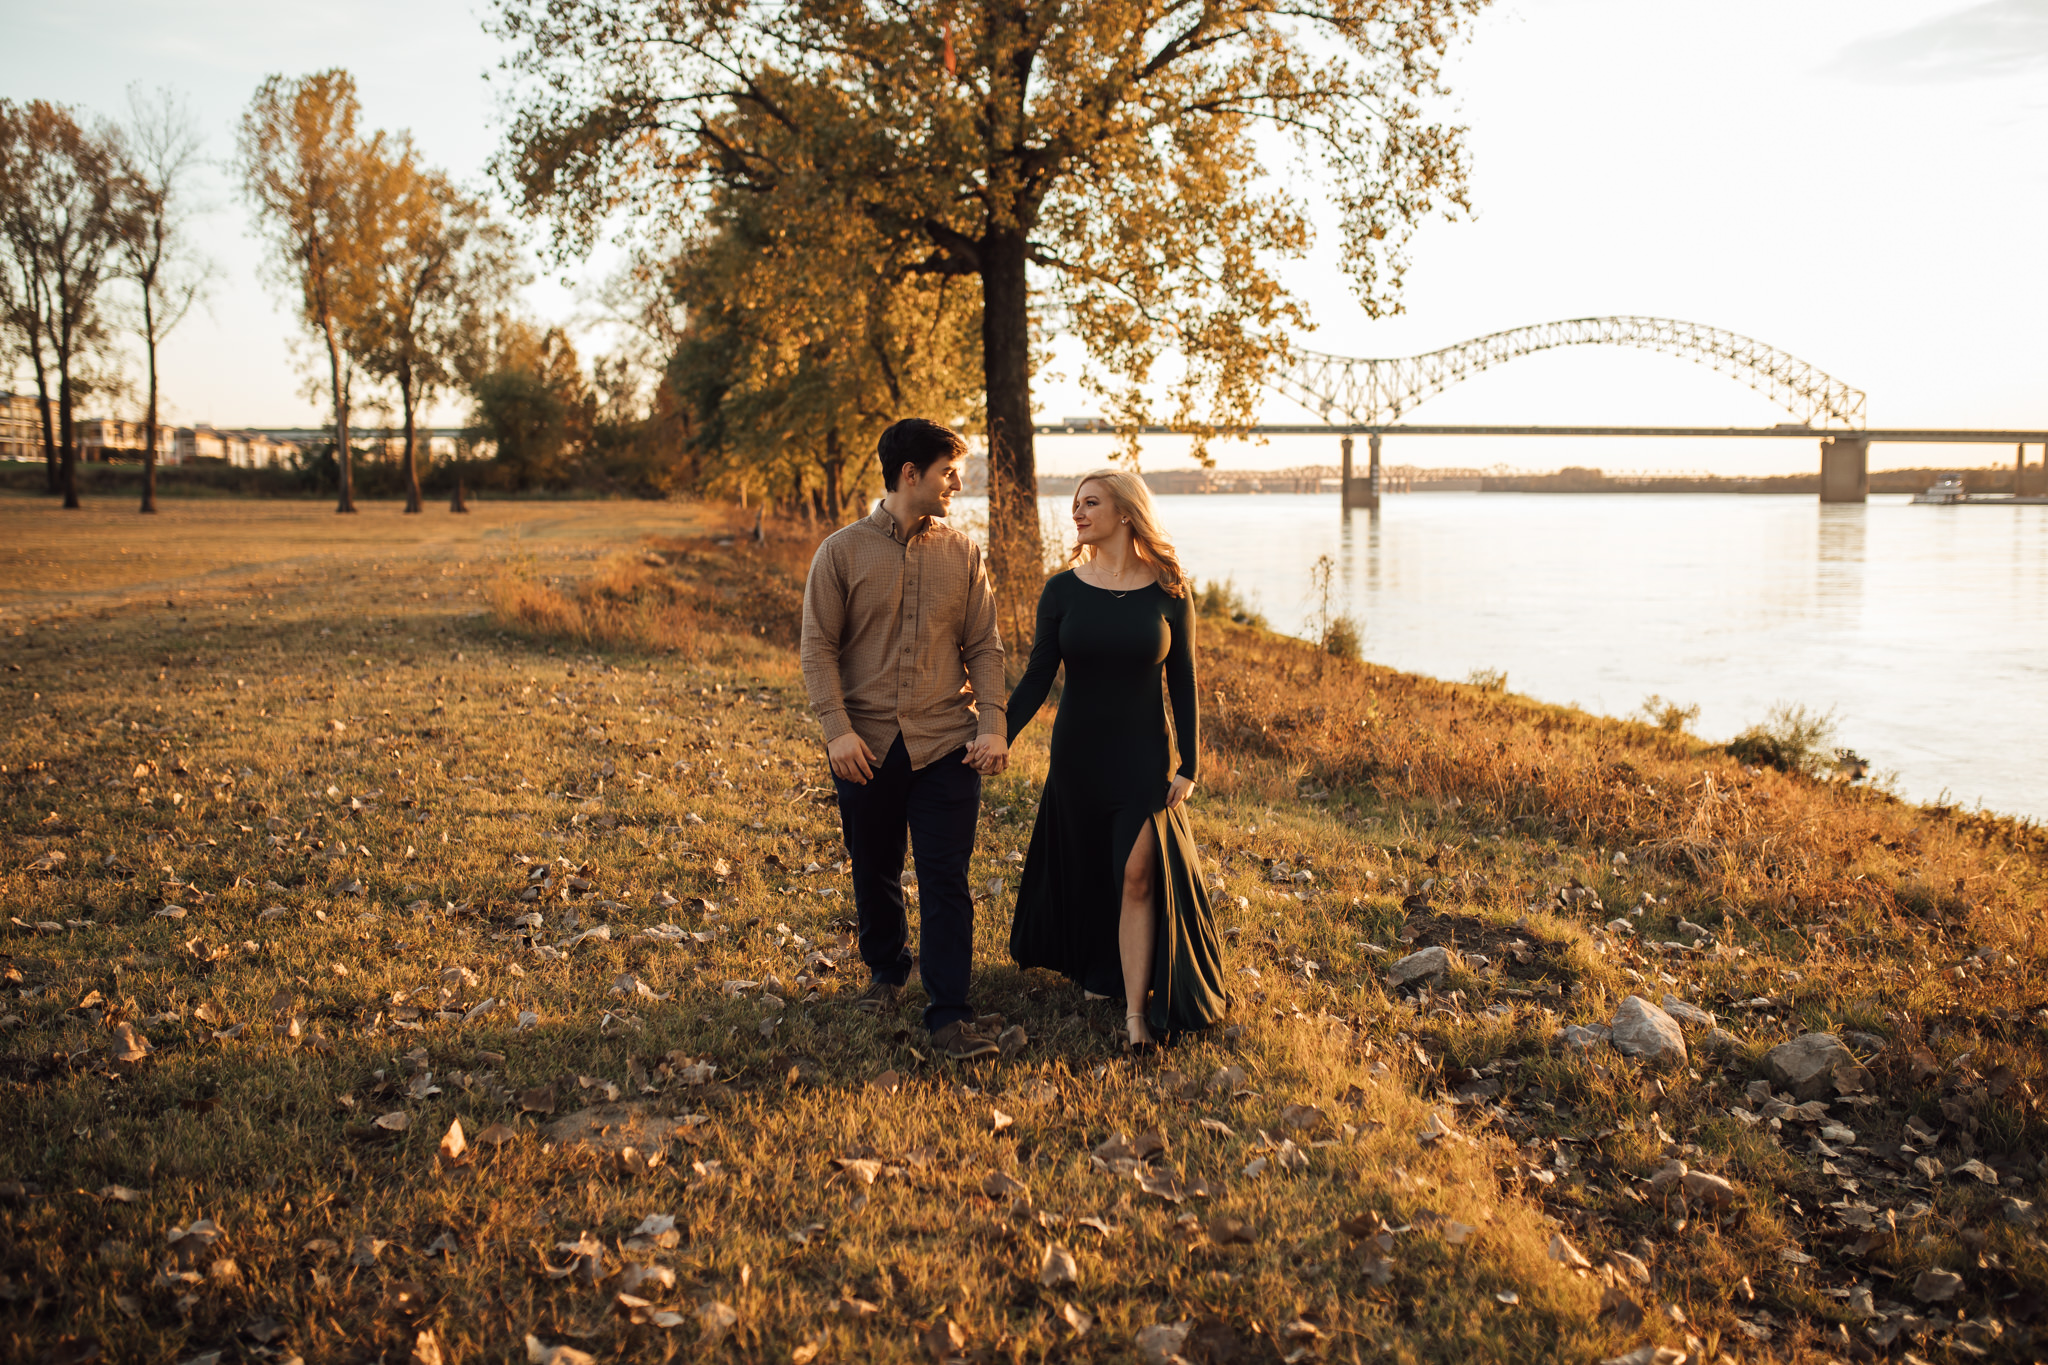 memphis-wedding-photographer-cassie-cook-photography-cafe-keough-engagement-photoshoot-coffee-engagement-40.jpg